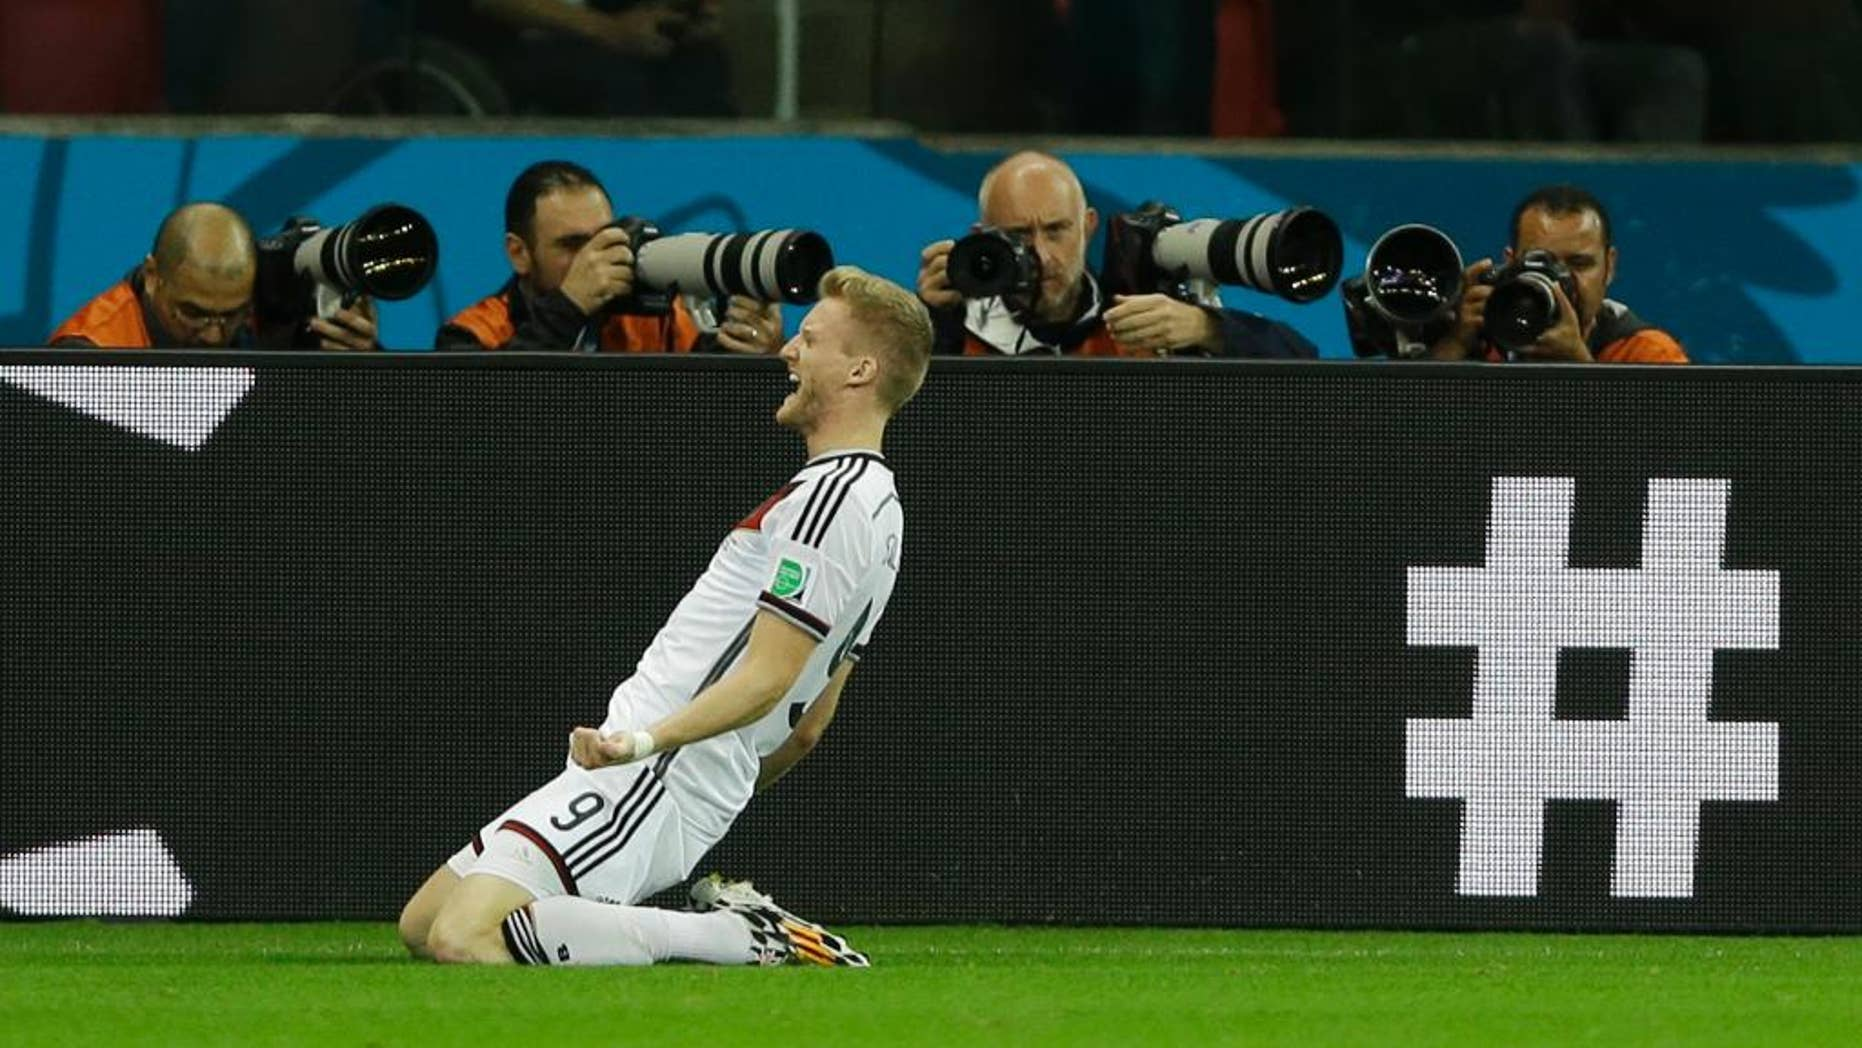 Germany's Andre Schuerrle celebrates after scoring his side's first goal in overtime during the World Cup round of 16 soccer match between Germany and Algeria at the Estadio Beira-Rio in Porto Alegre, Brazil, Monday, June 30, 2014. (AP Photo/Kirsty Wigglesworth)